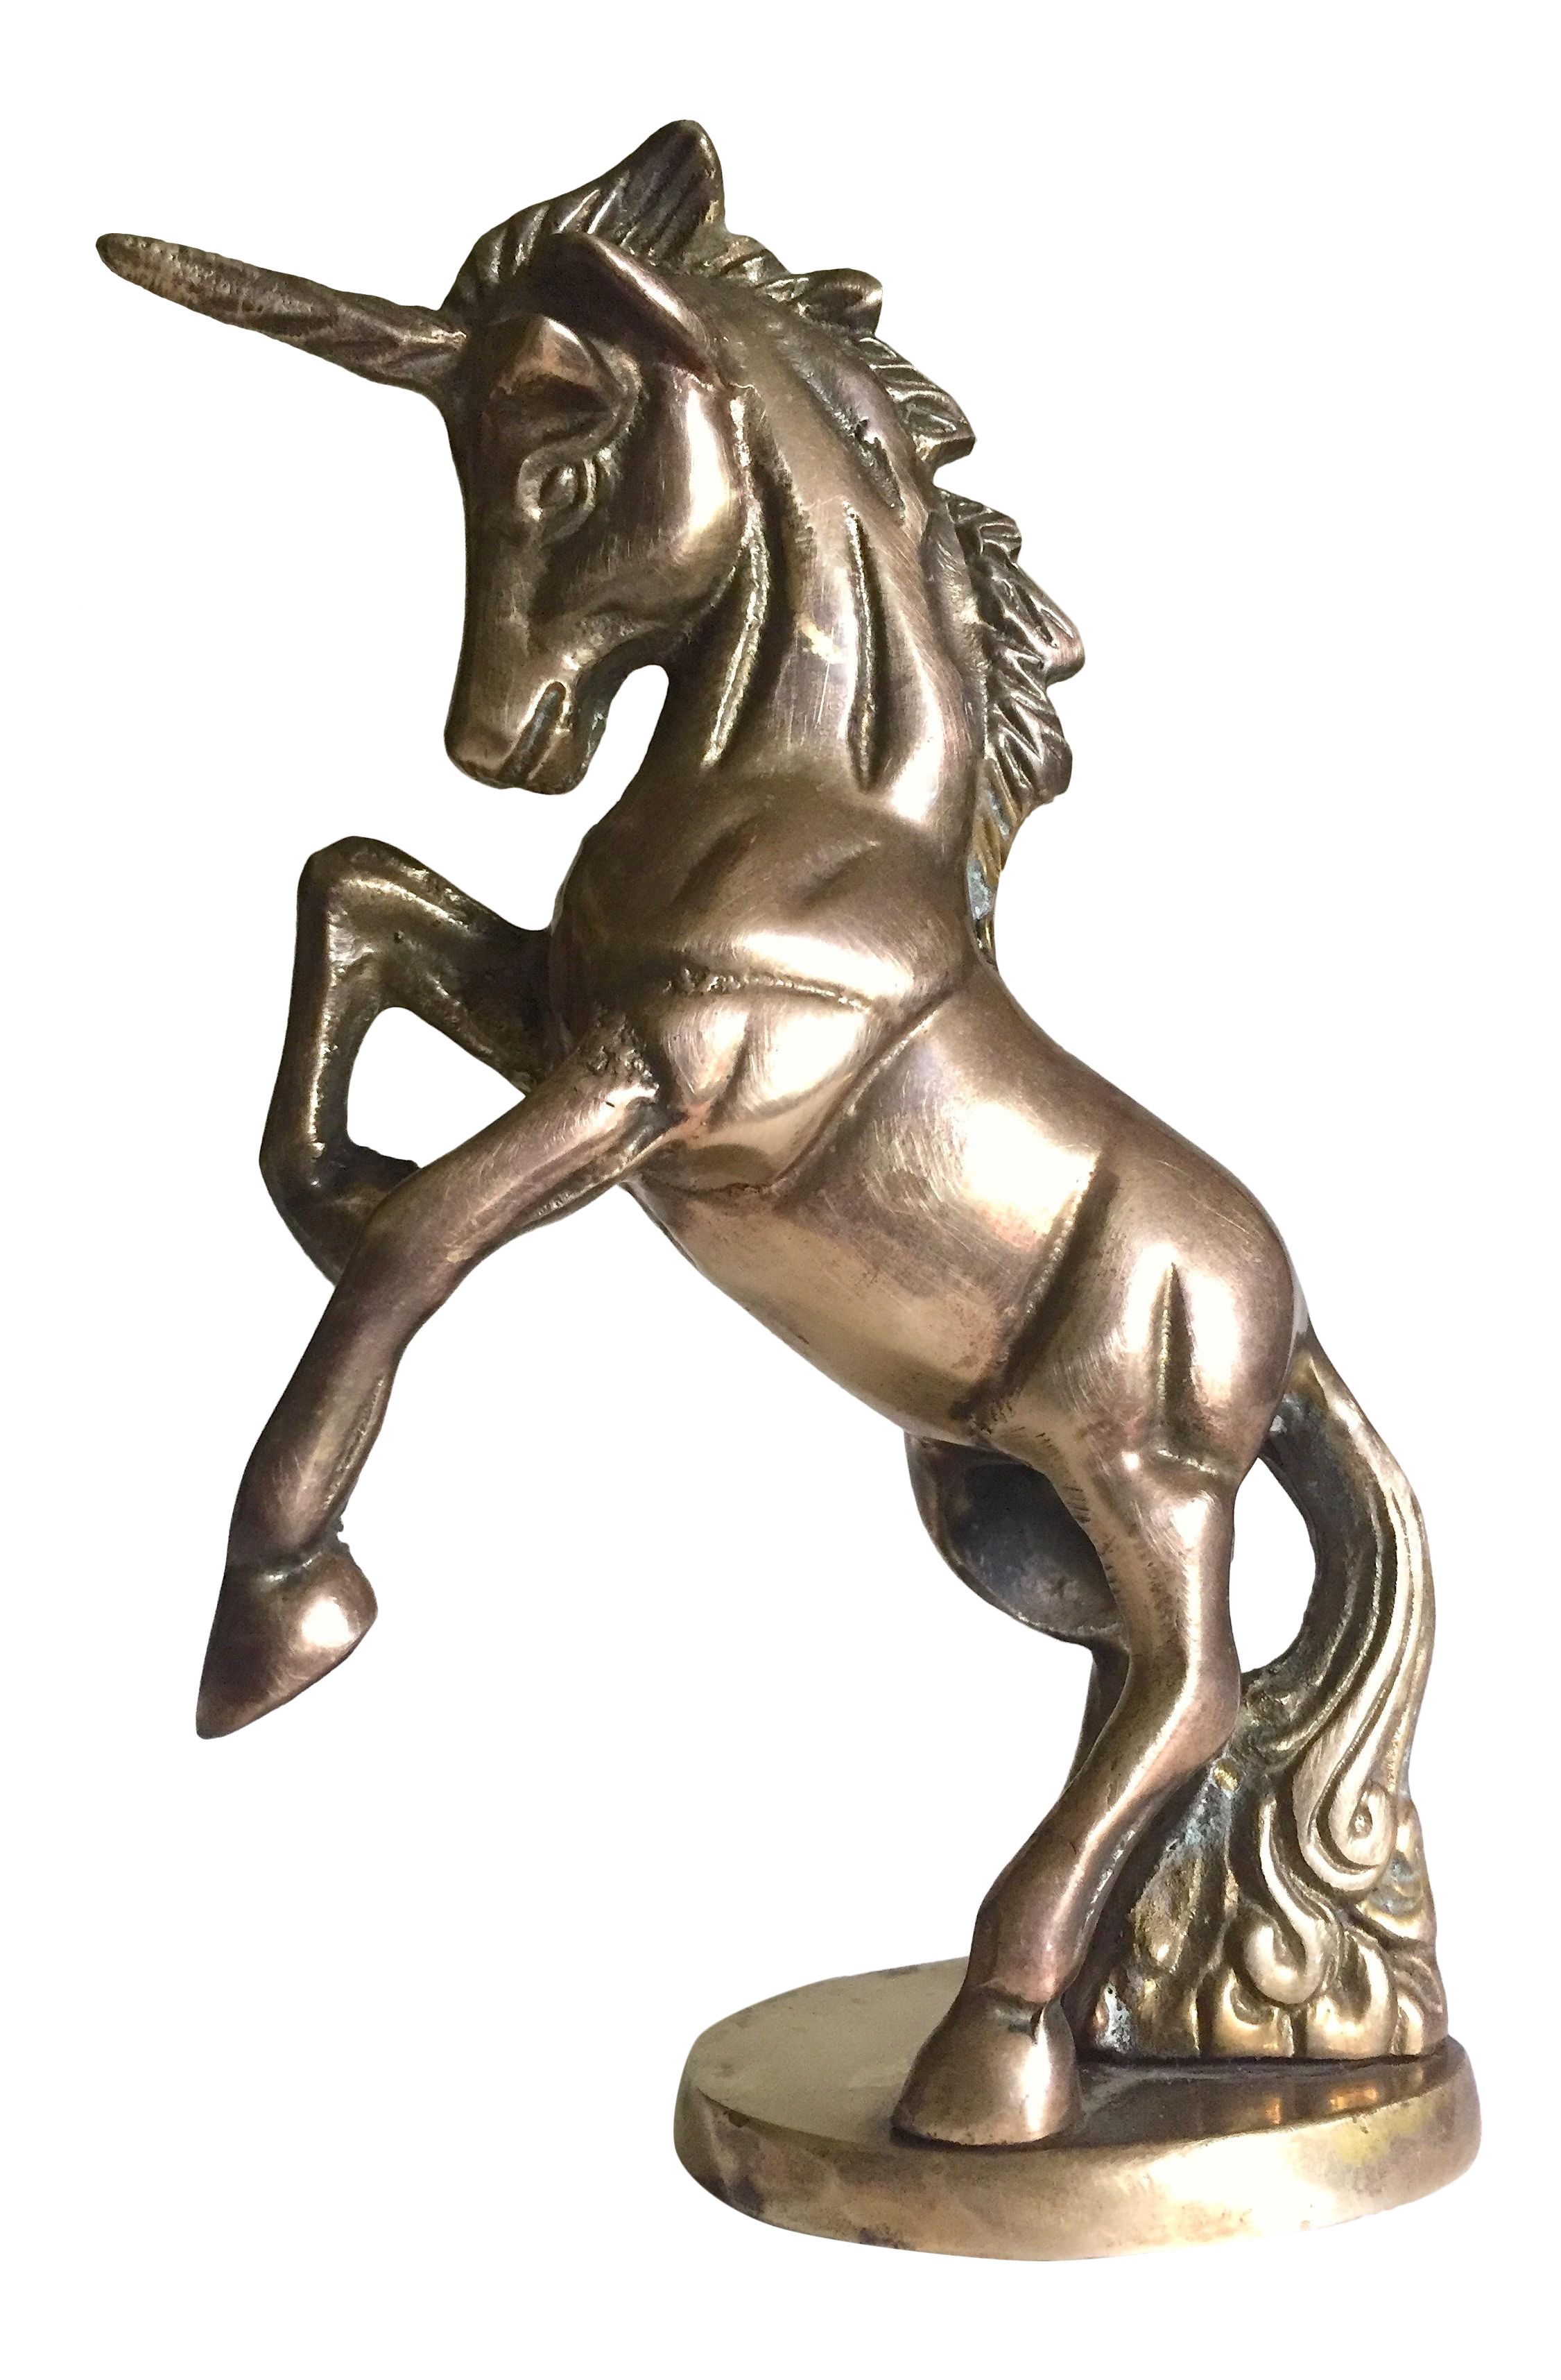 vintage mid century modern cast solid brass mythological unicorn figurine sculpture accent table chairish balcony chairs tall marble side round glass coffee wood bases unstained